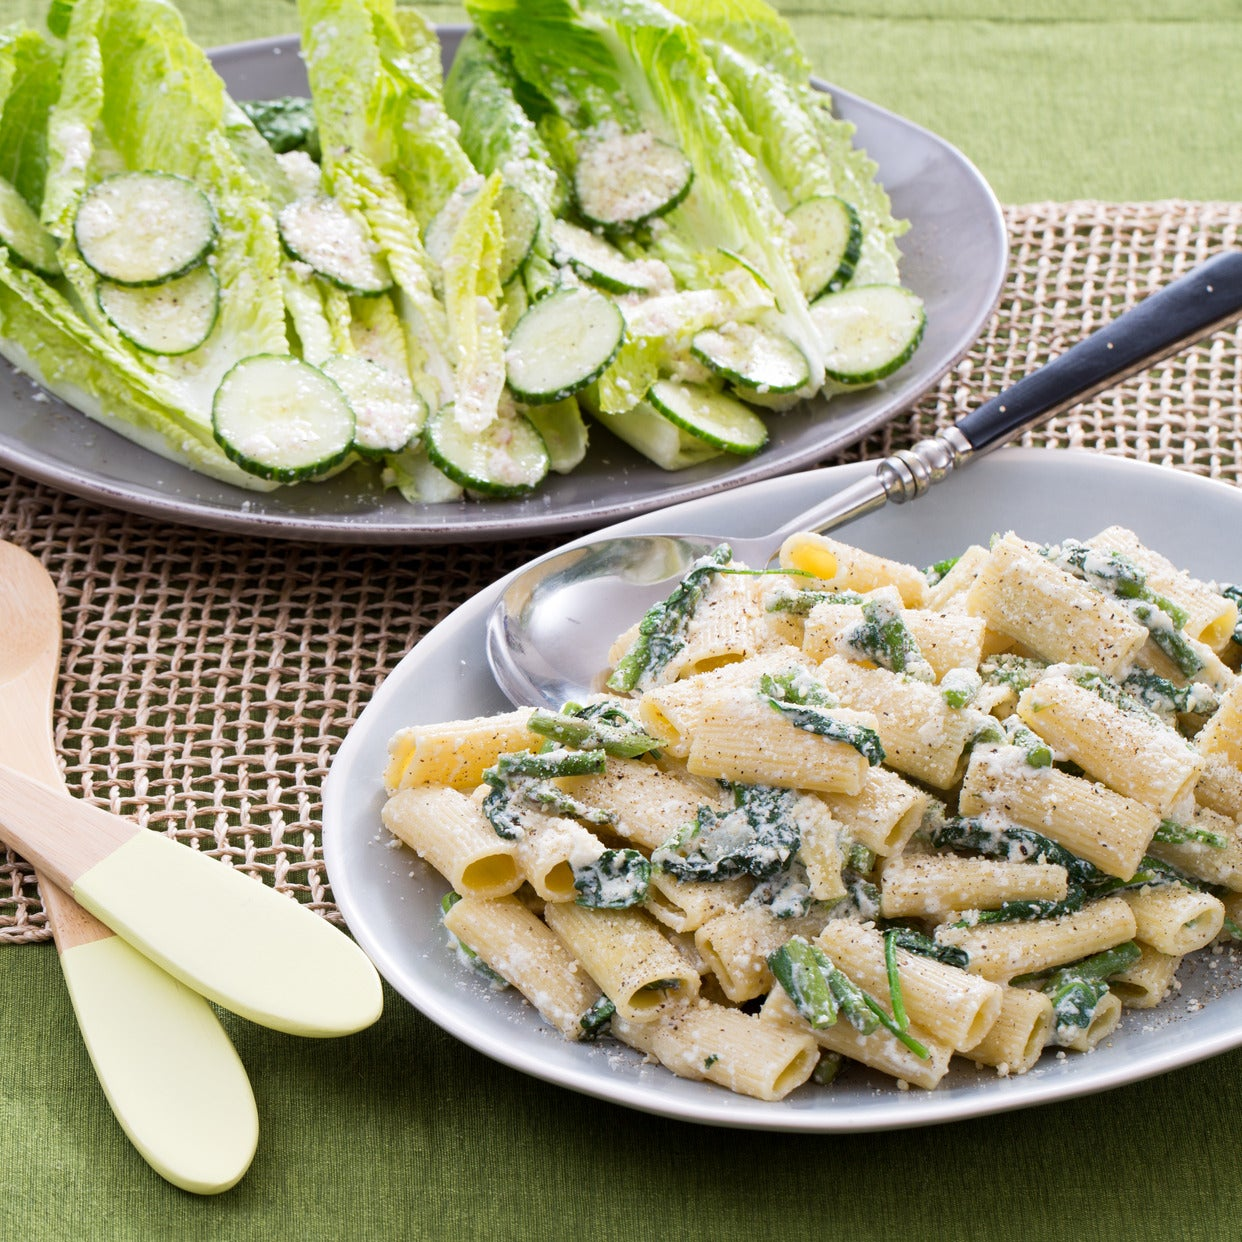 Creamy Asparagus Rigatoni with Romaine Salad & Lemon-Parmesan Dressing